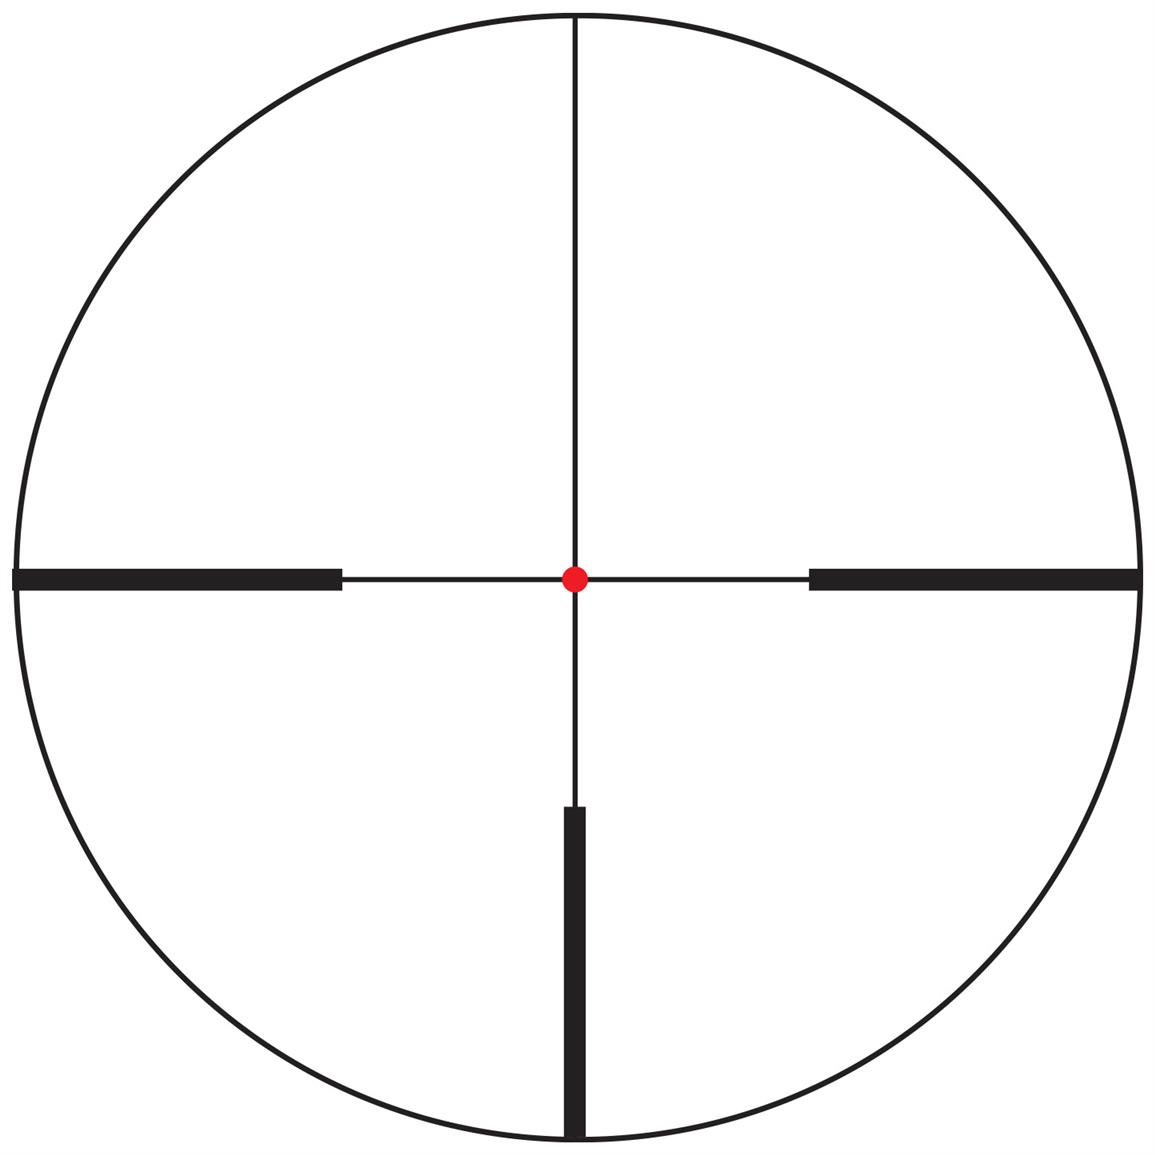 4A-1 Reticle